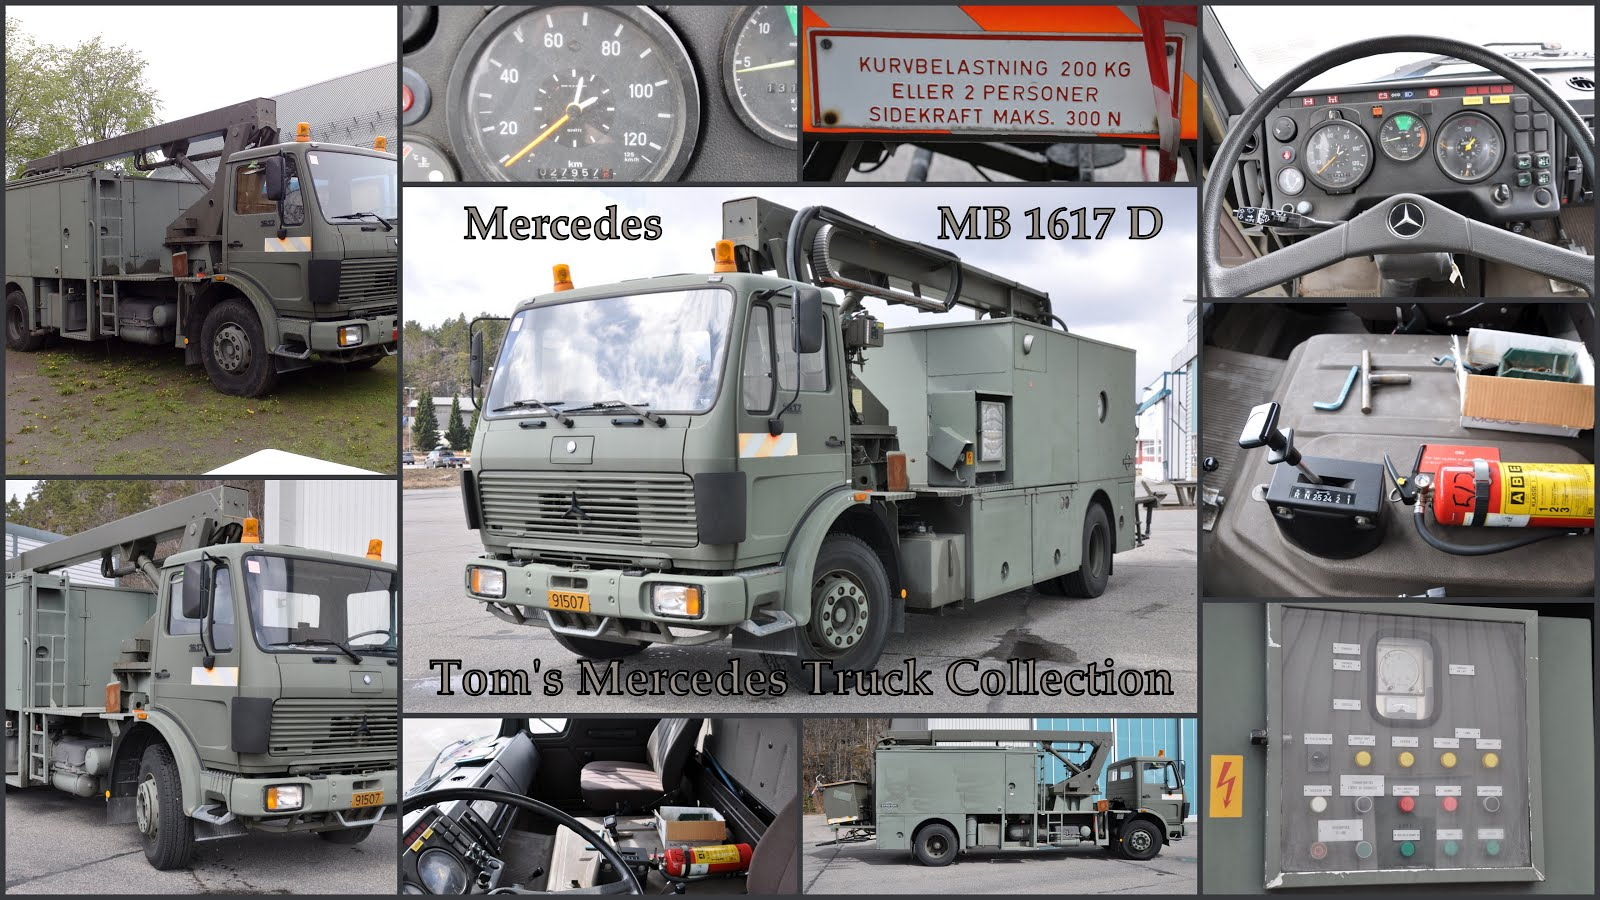 Mercedes MB 1617 D Army Truck 1617/52 1986